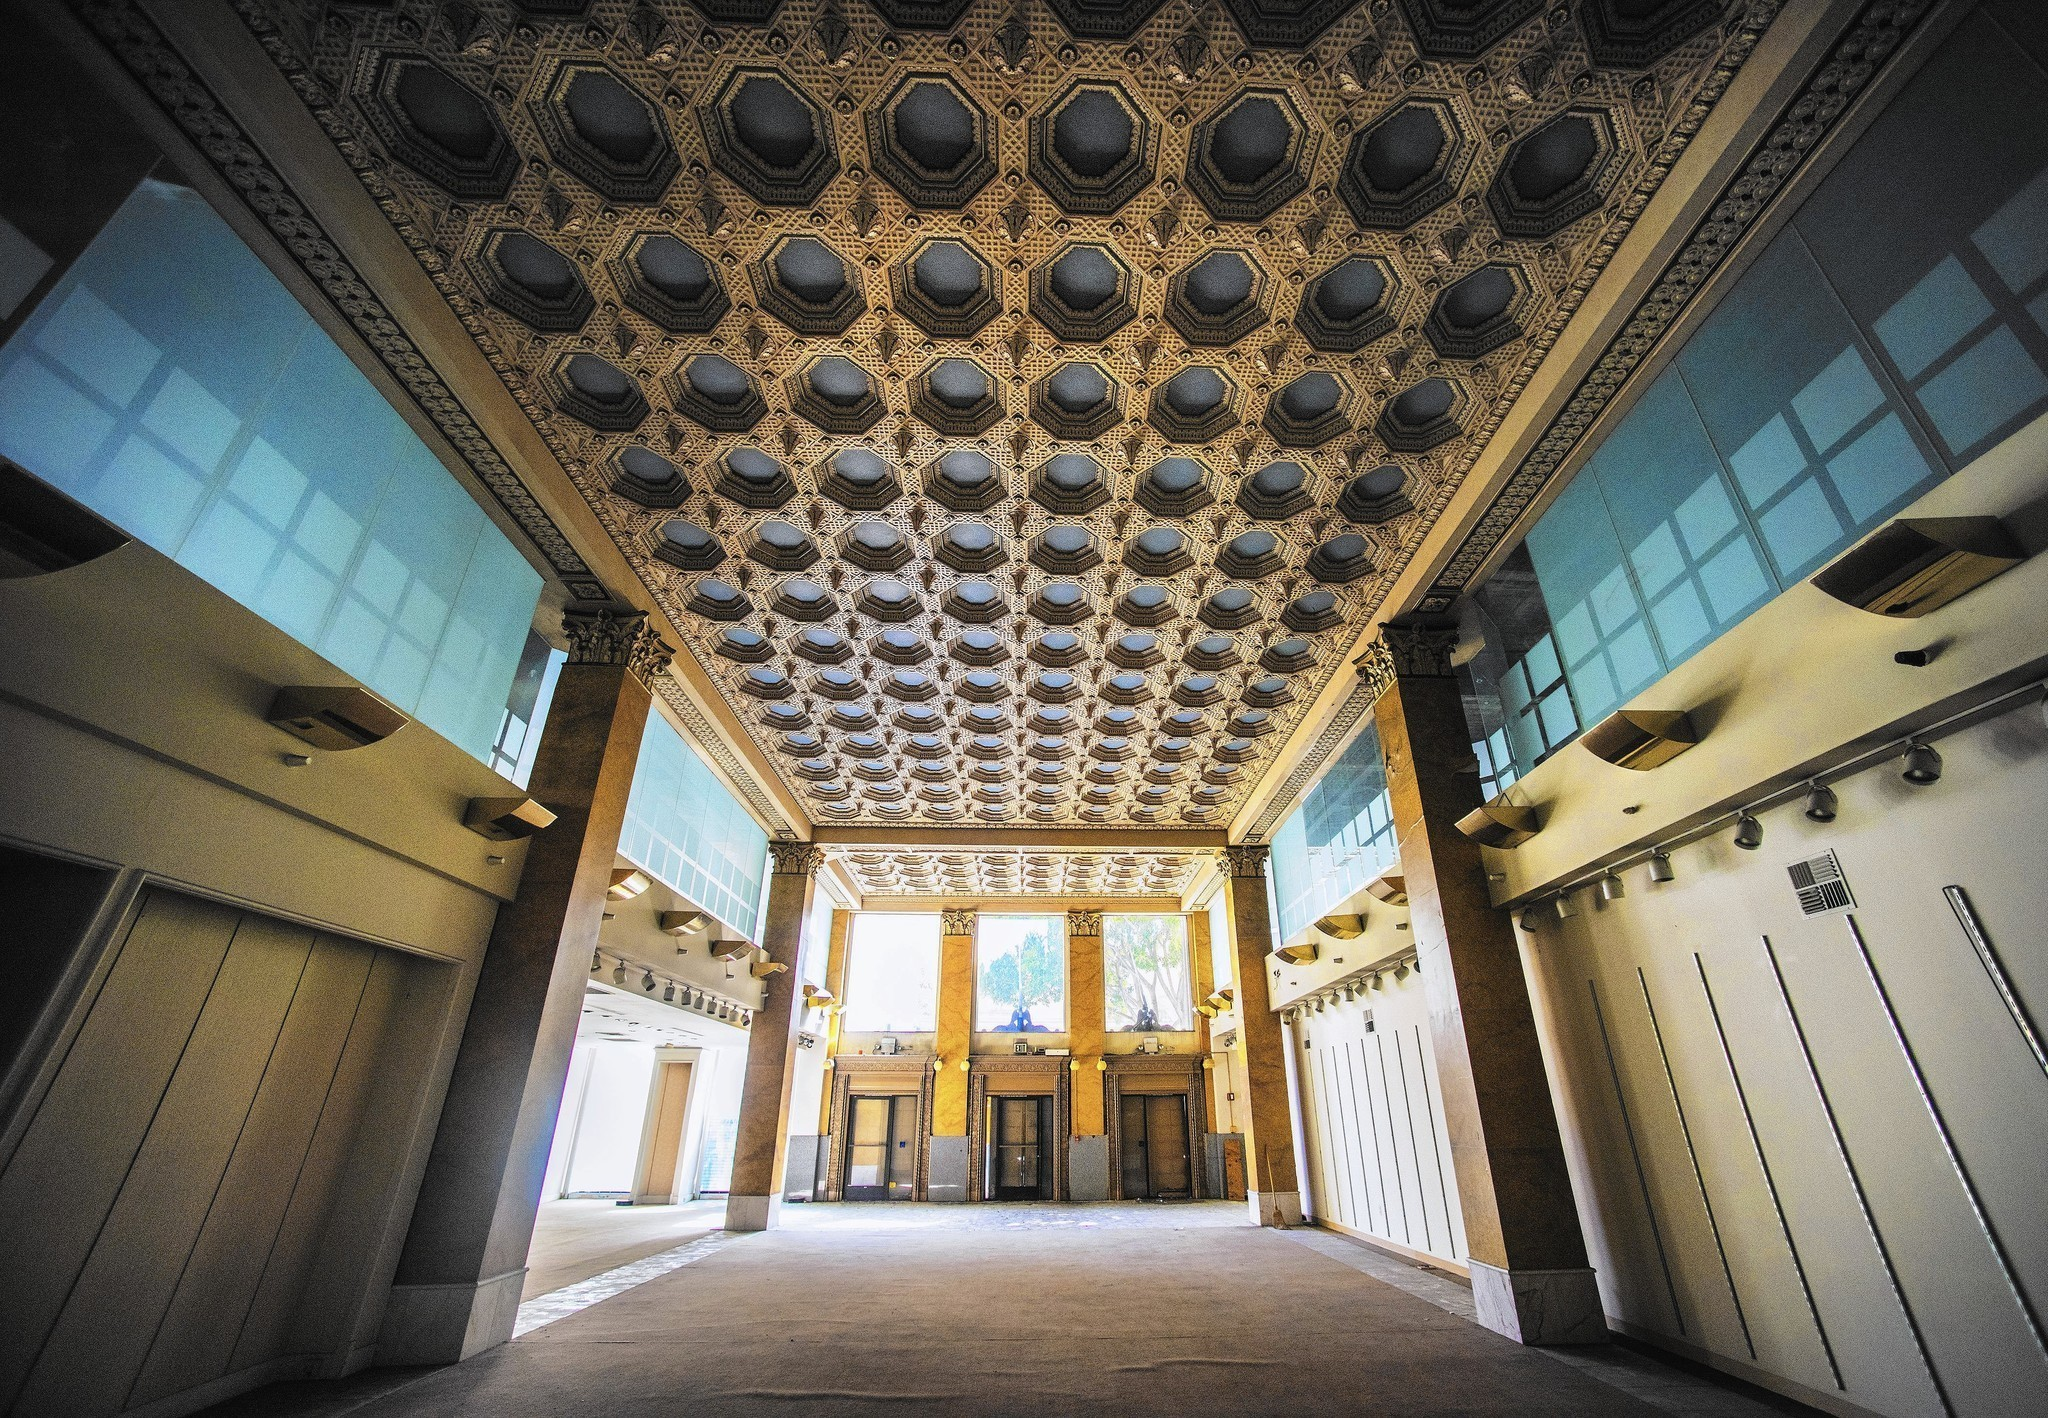 Downtown L A Revival Continues With Remake Of Opulent Giannini Building La Times